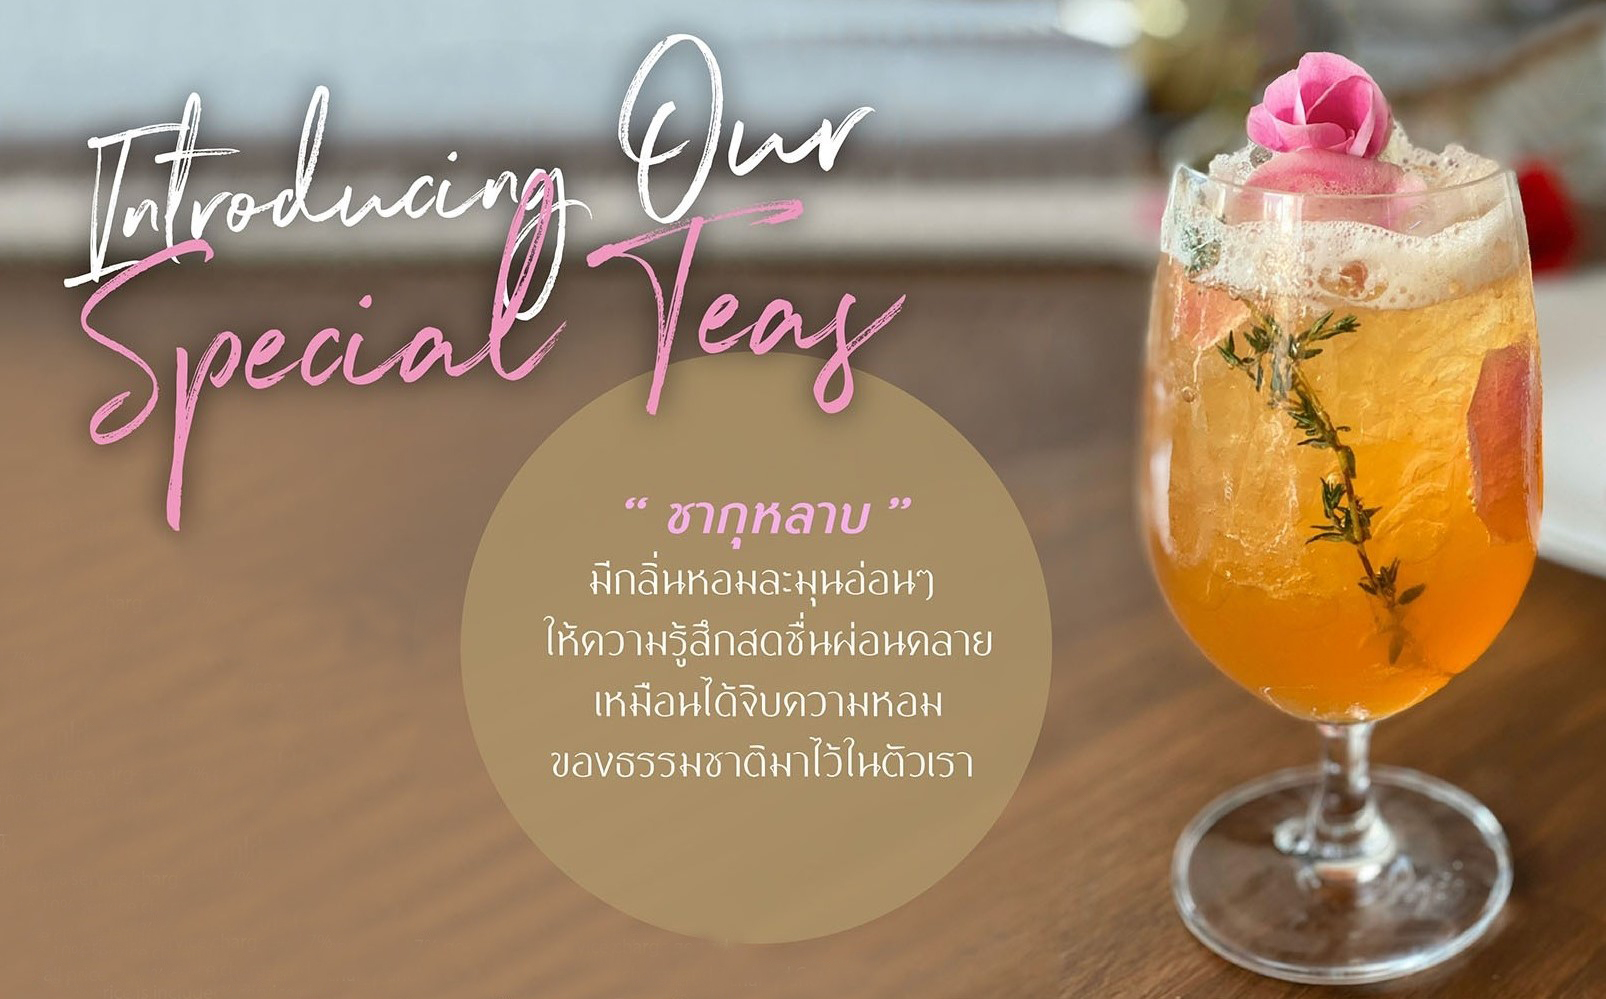 รูปภาพของ Introducing Our Special Teas